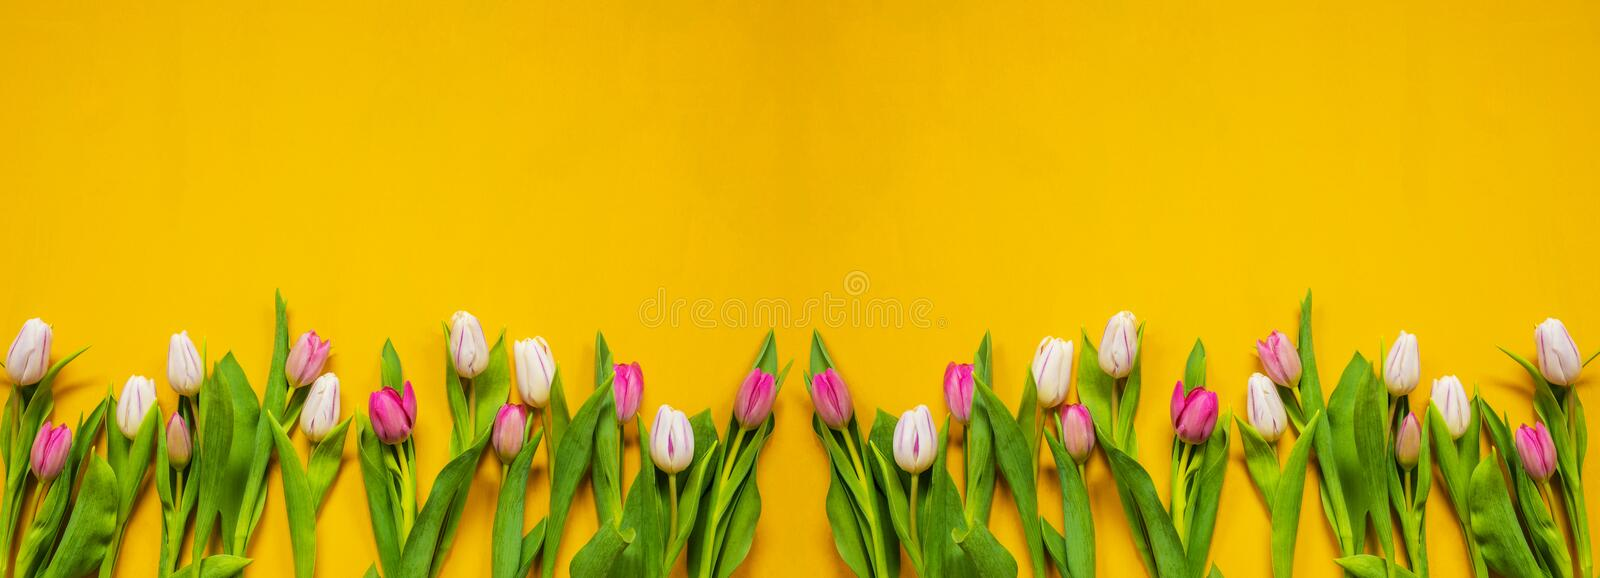 Banner Of Yellow And Pink Tulip Spring Flowers, Yellow Background royalty free stock photography